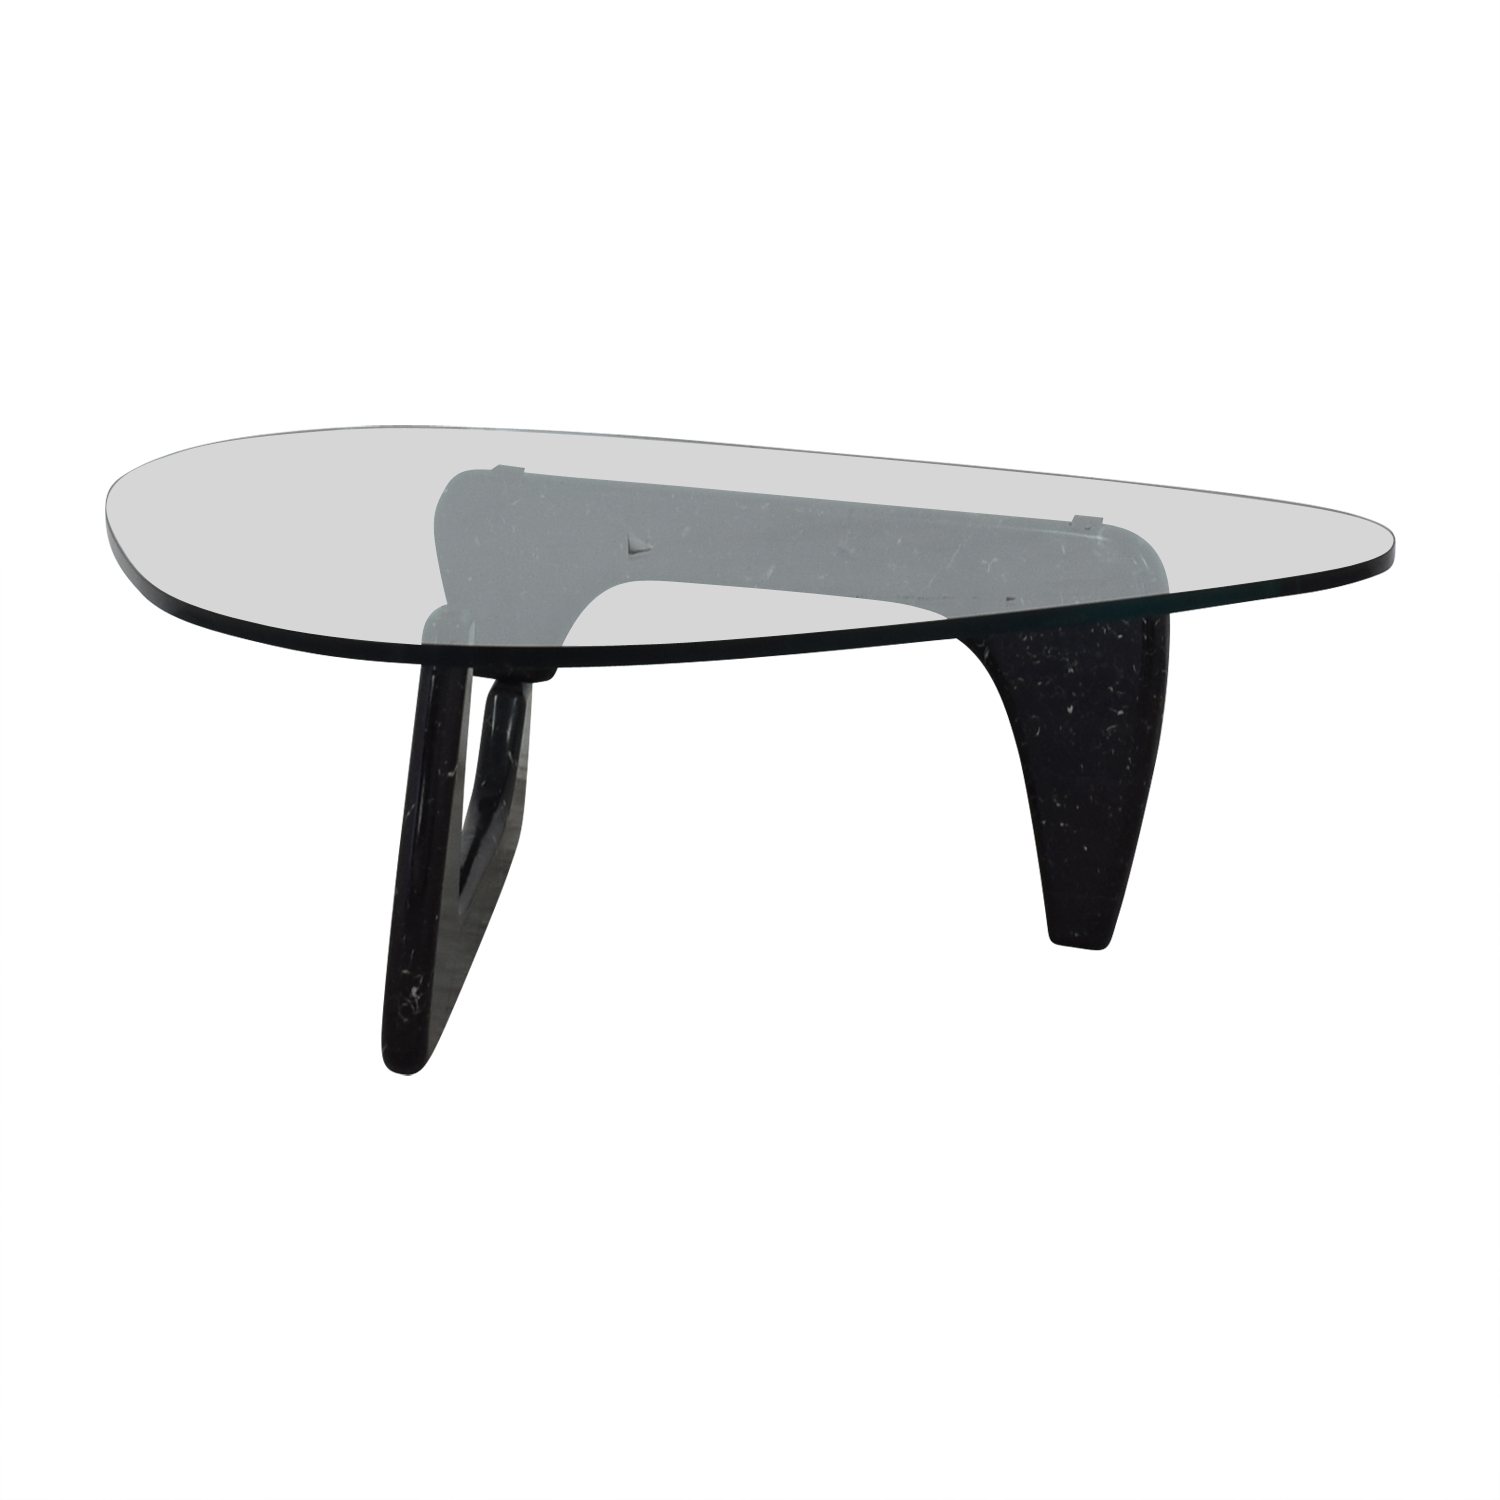 Maurice Villency Noguchi Style Glass with Black Marble Coffee Table / Coffee Tables